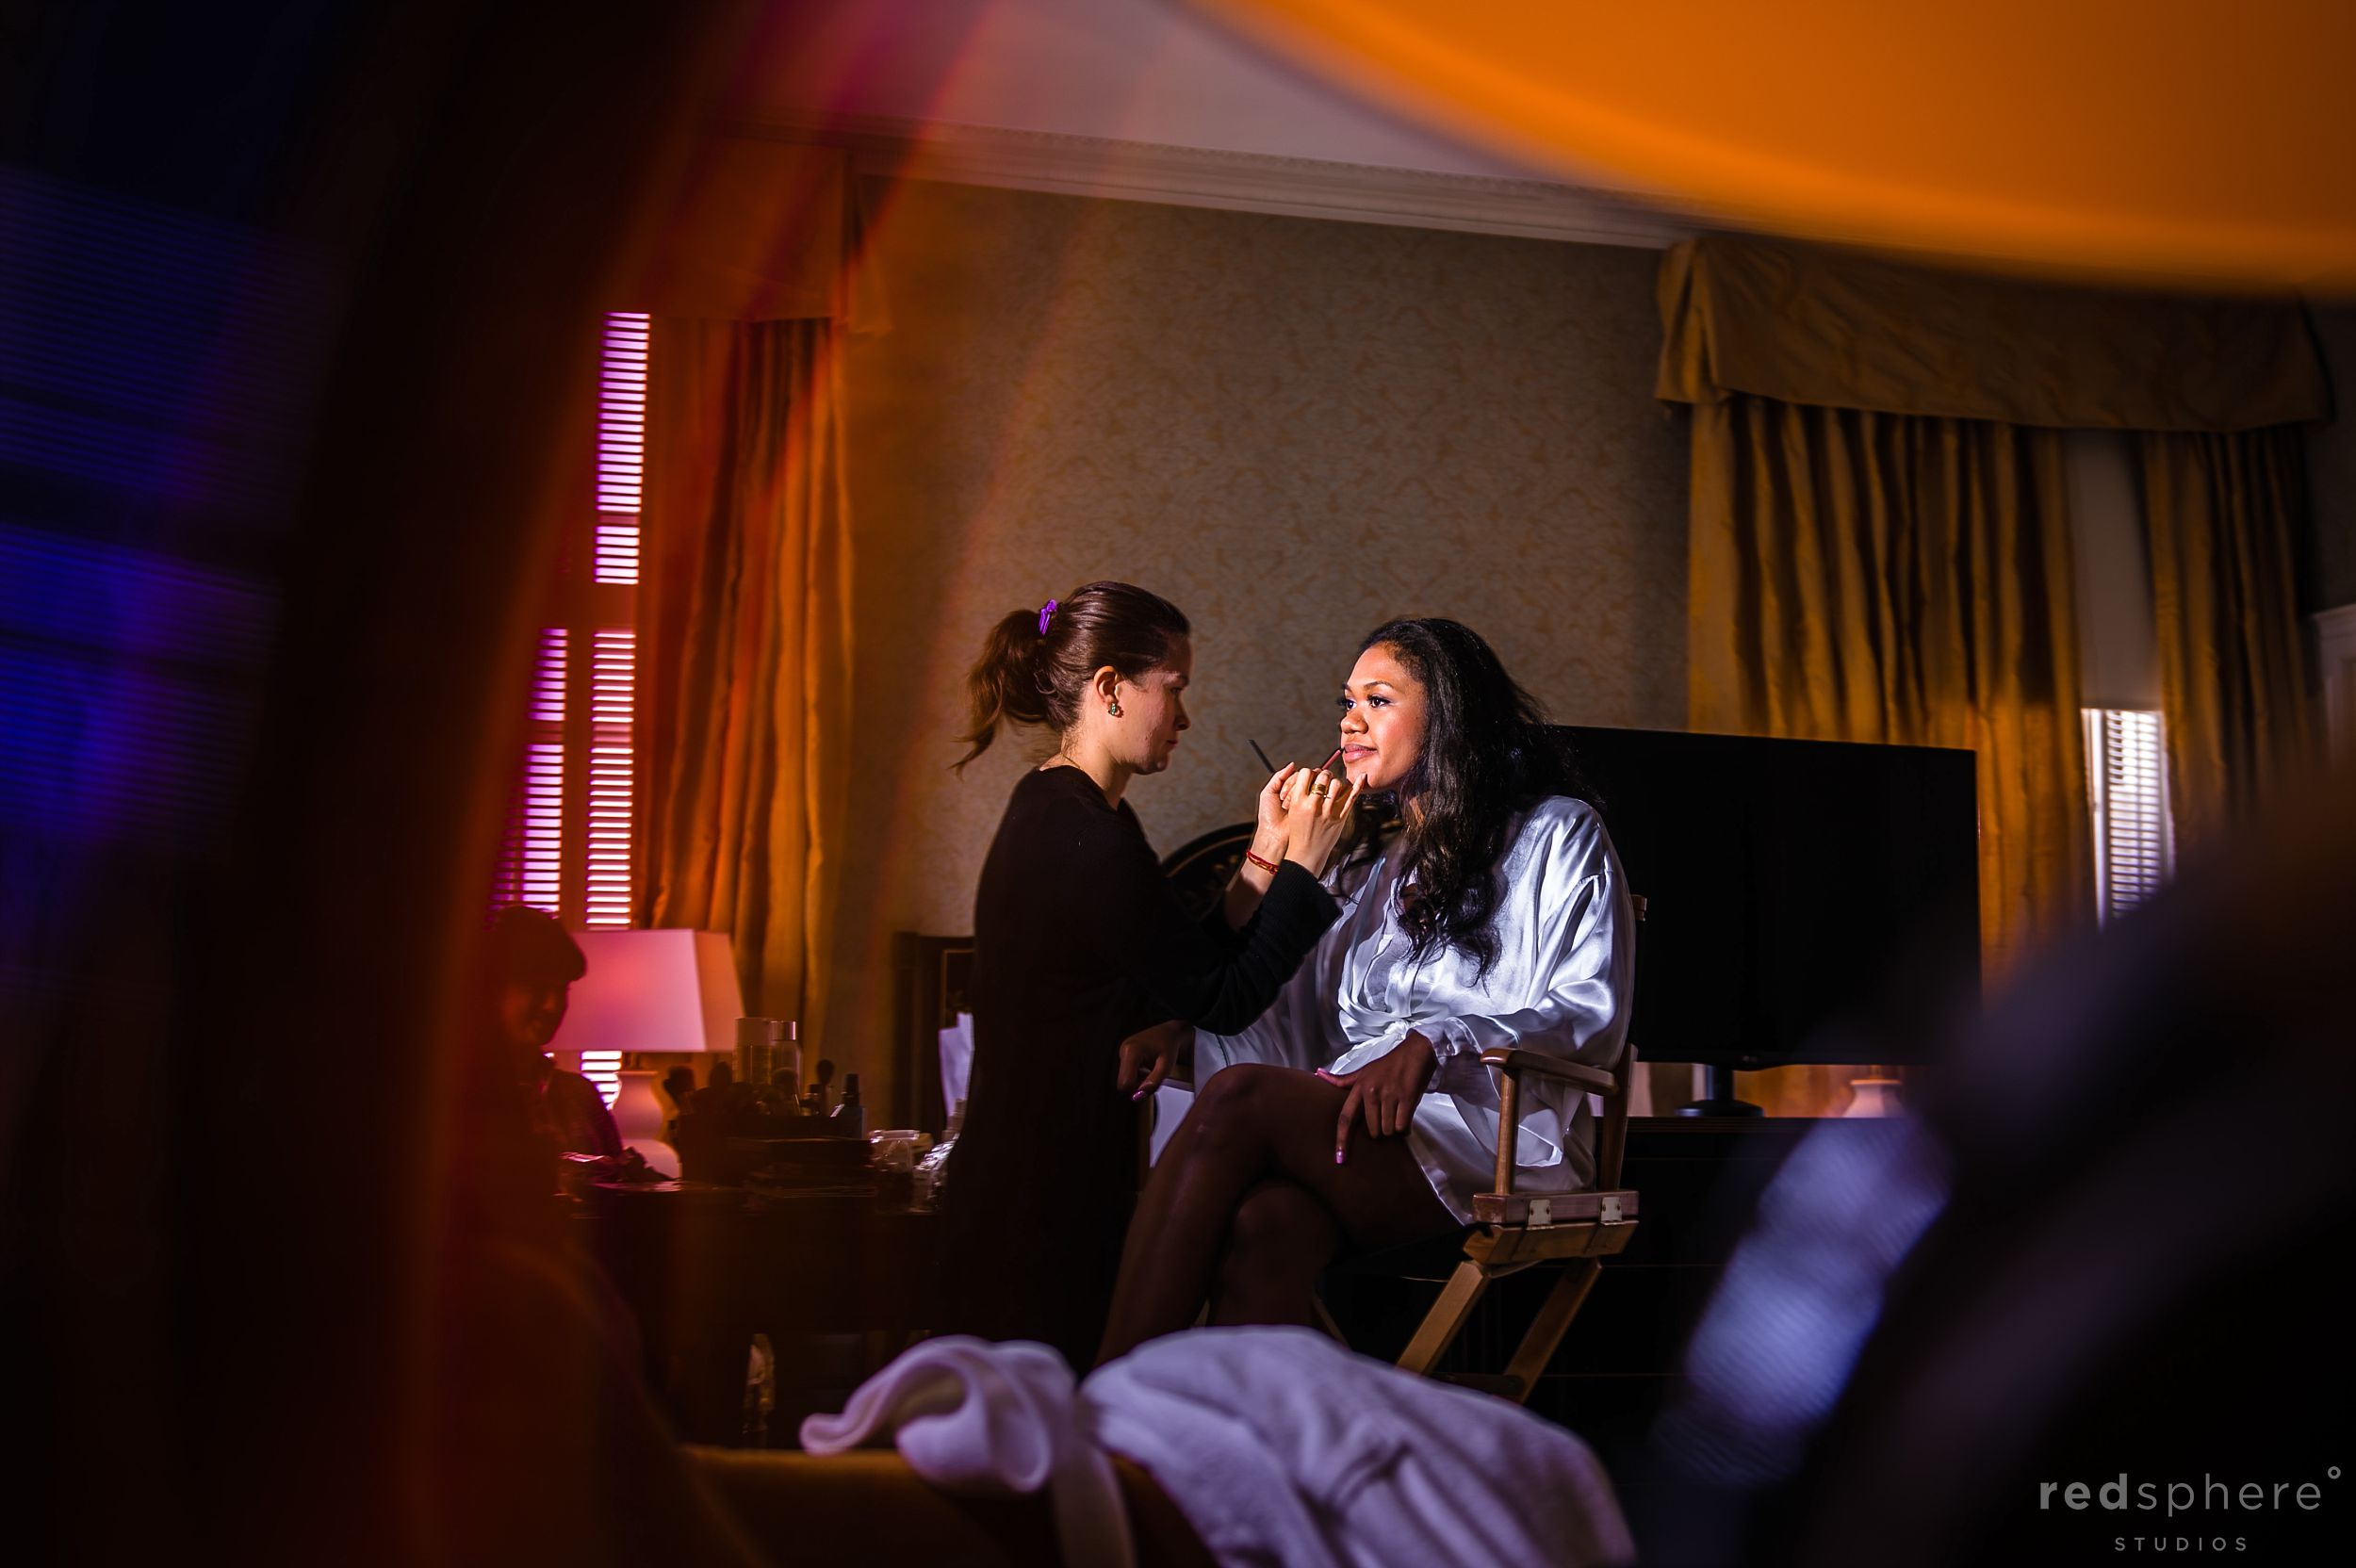 The Bride Getting Her Makeup Done For Fairmont Hotel Wedding